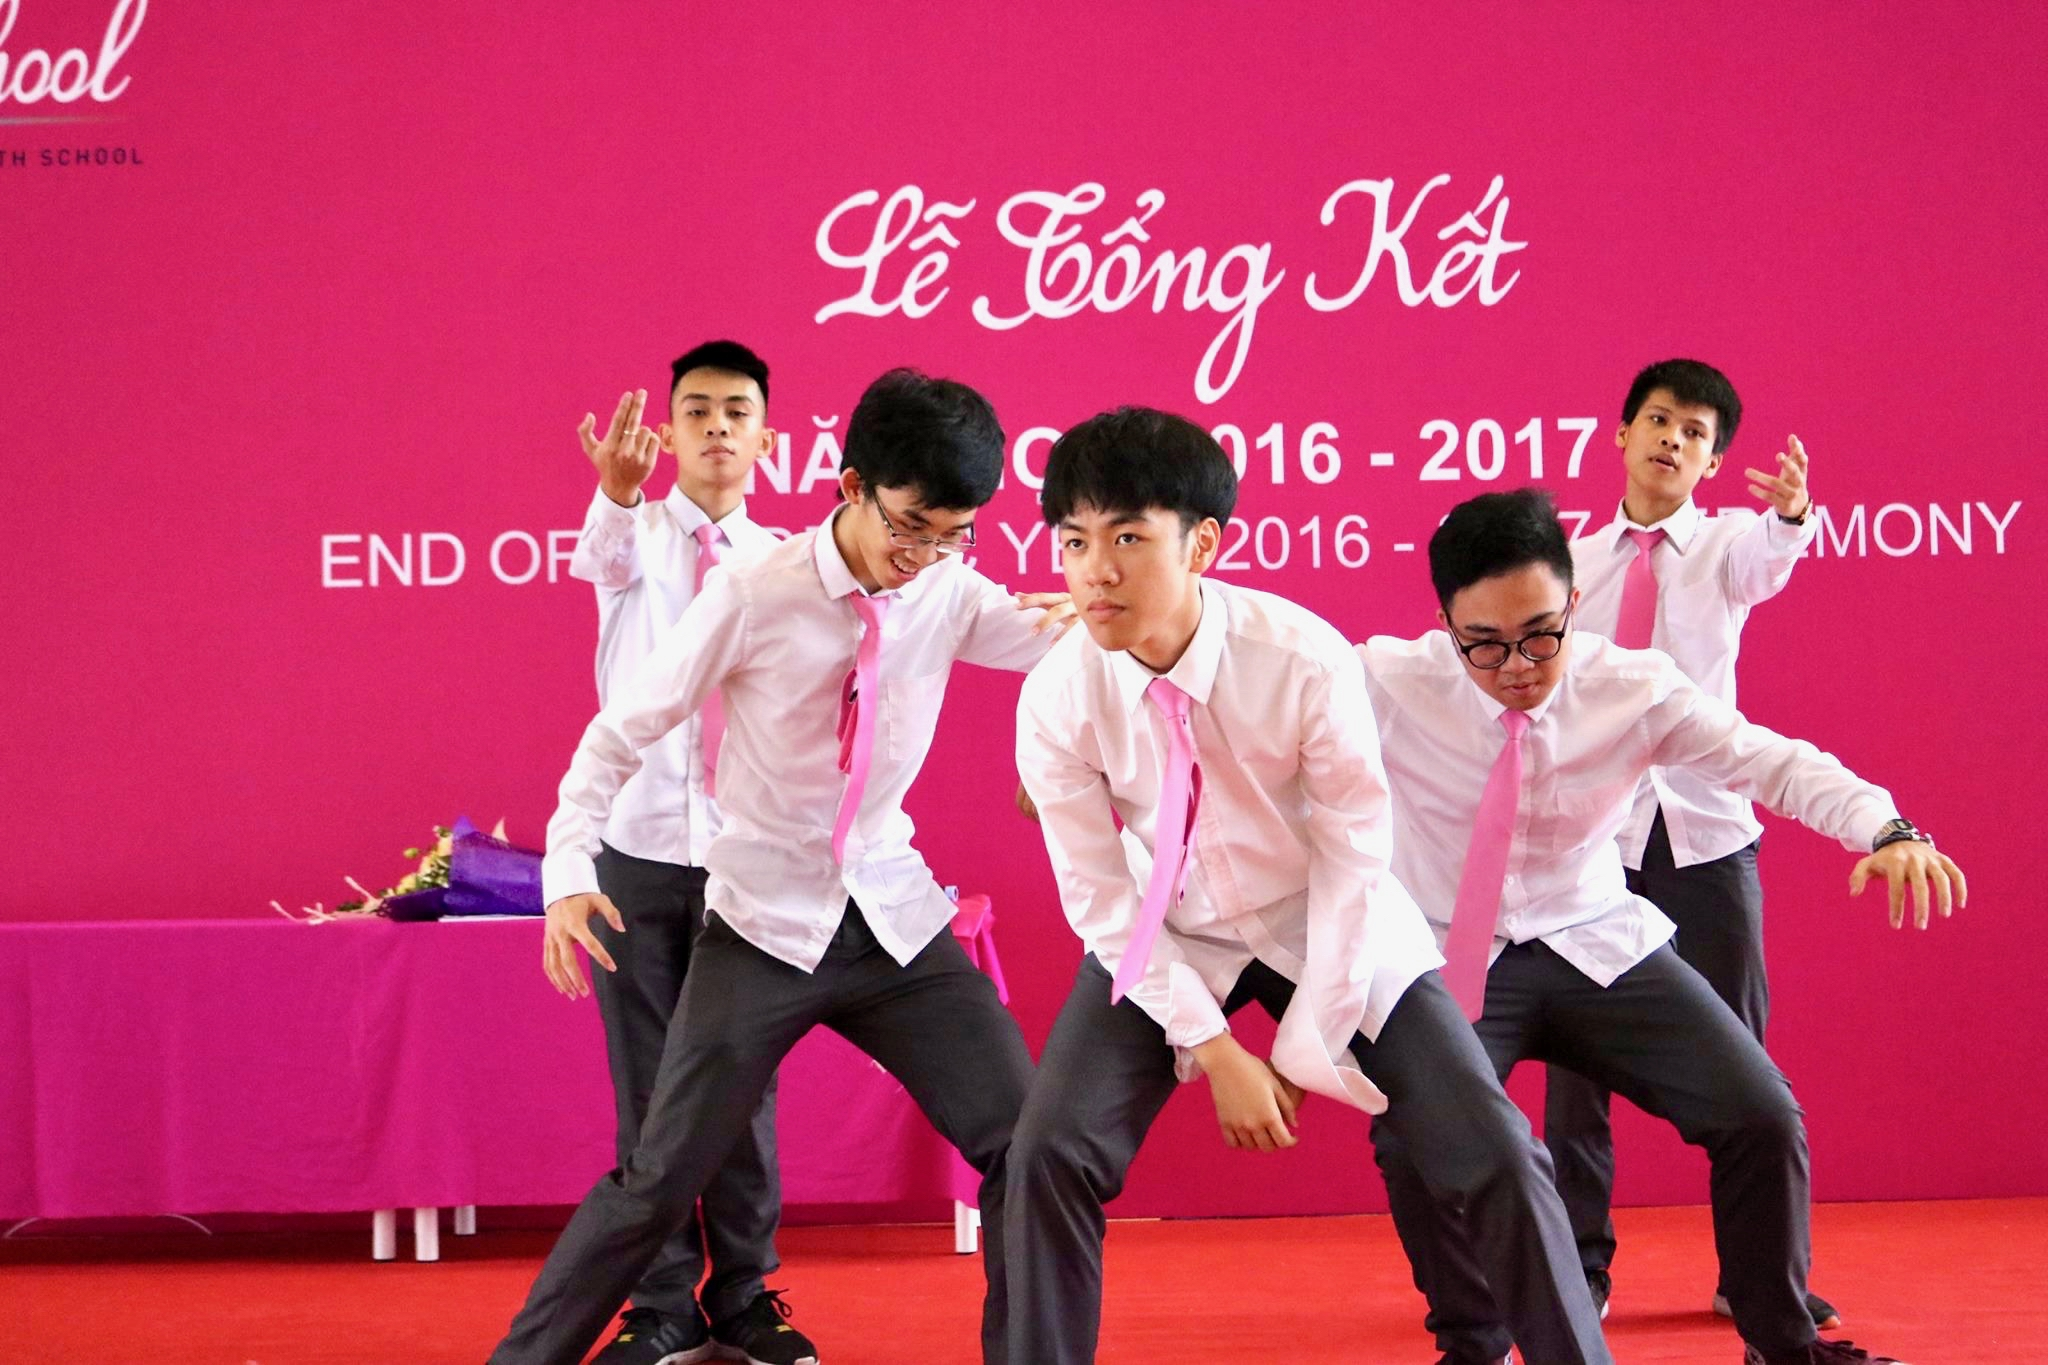 Closing Ceremony Dance.jpg